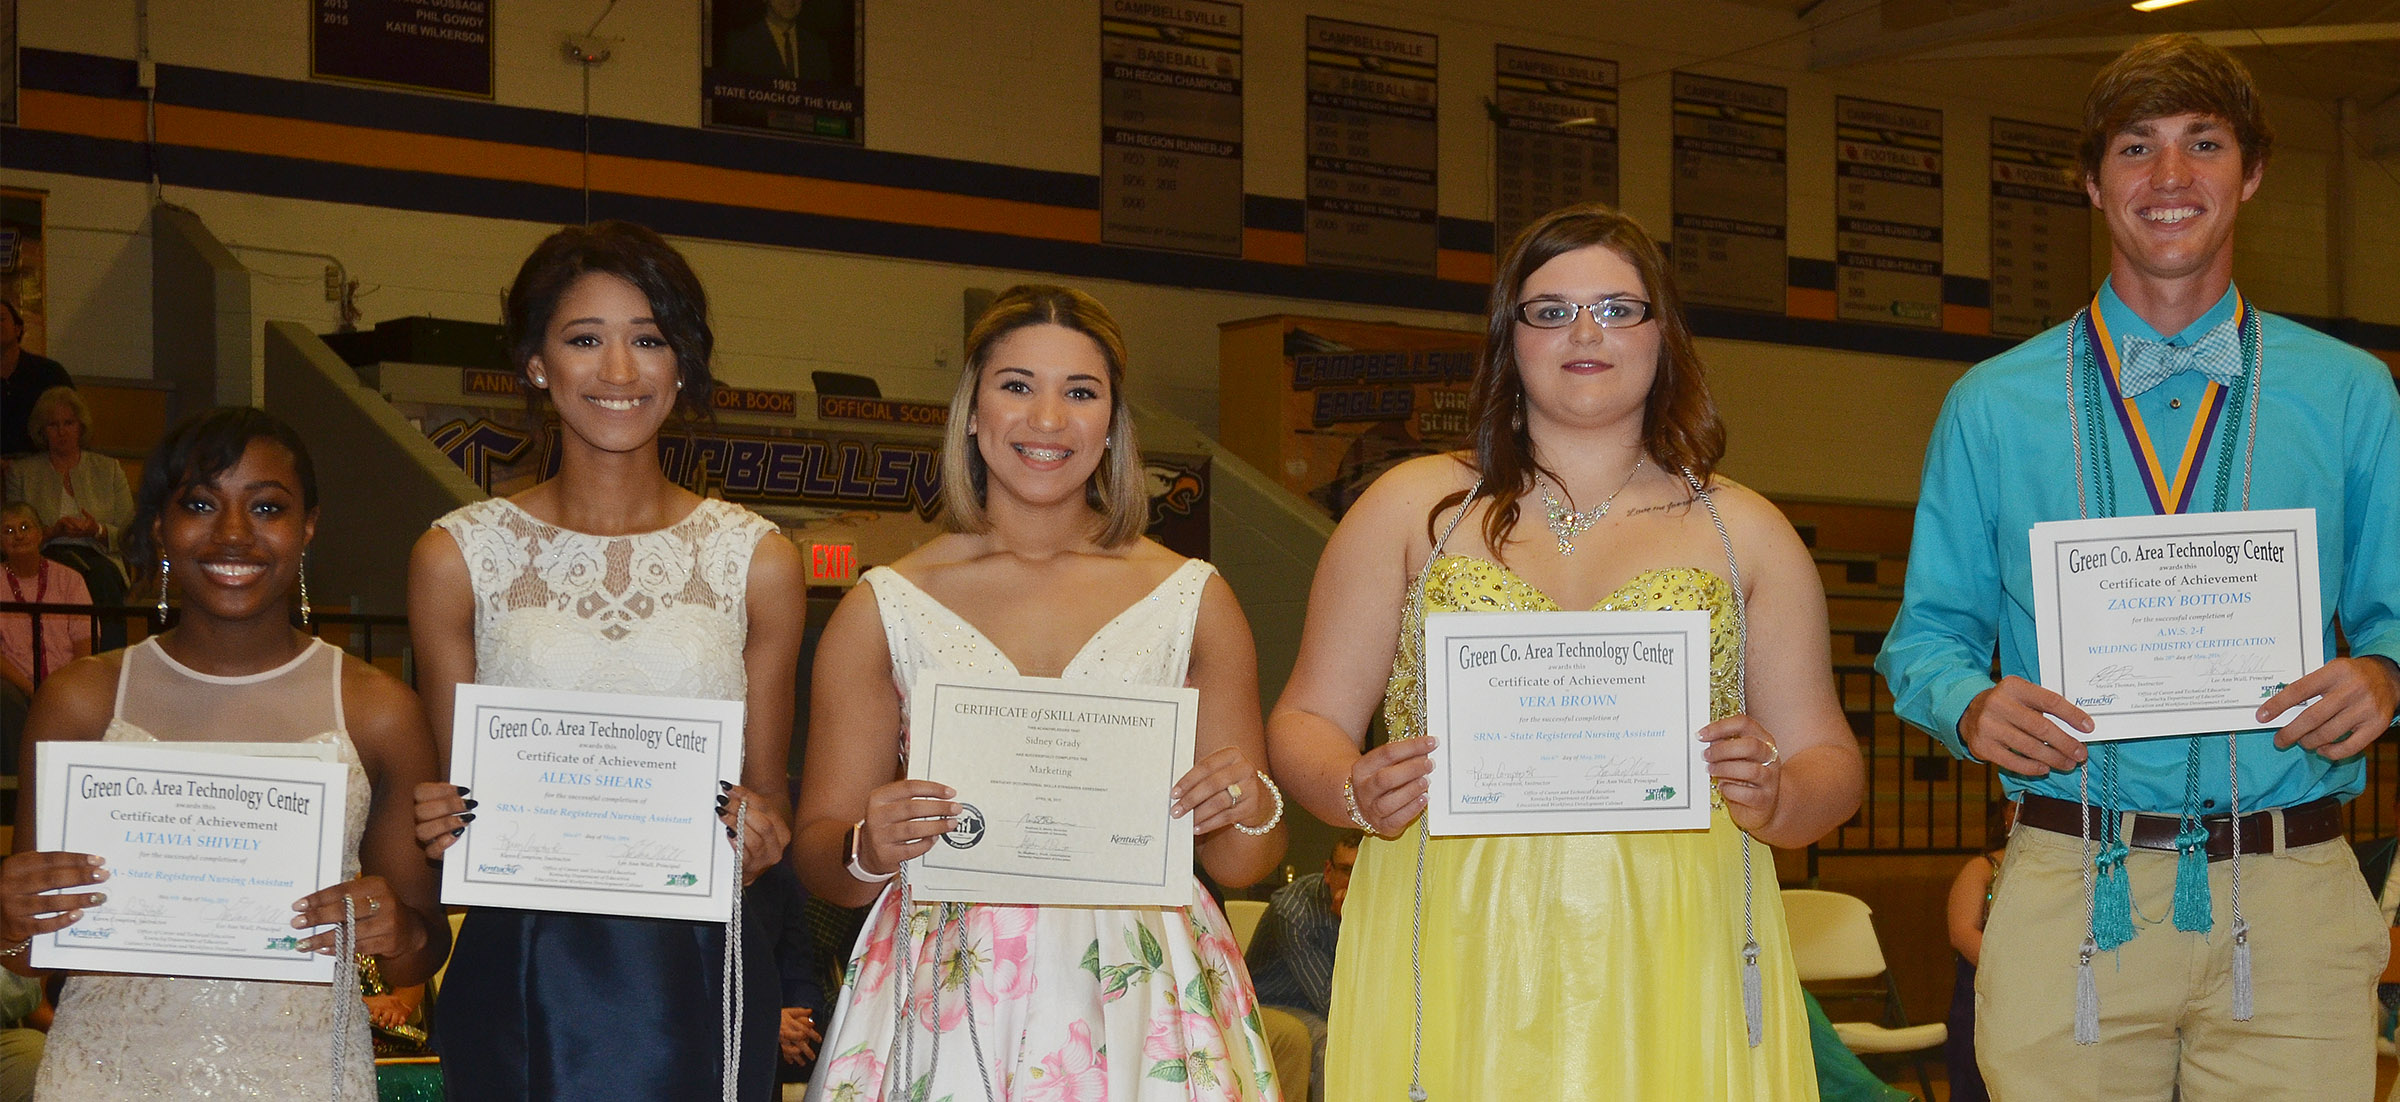 Receiving awards from the Green County Area Technology Center are, from left, Latavia Shively, Lexi Shears, Sidney Grady, Vera Brown and Zack Bottoms.